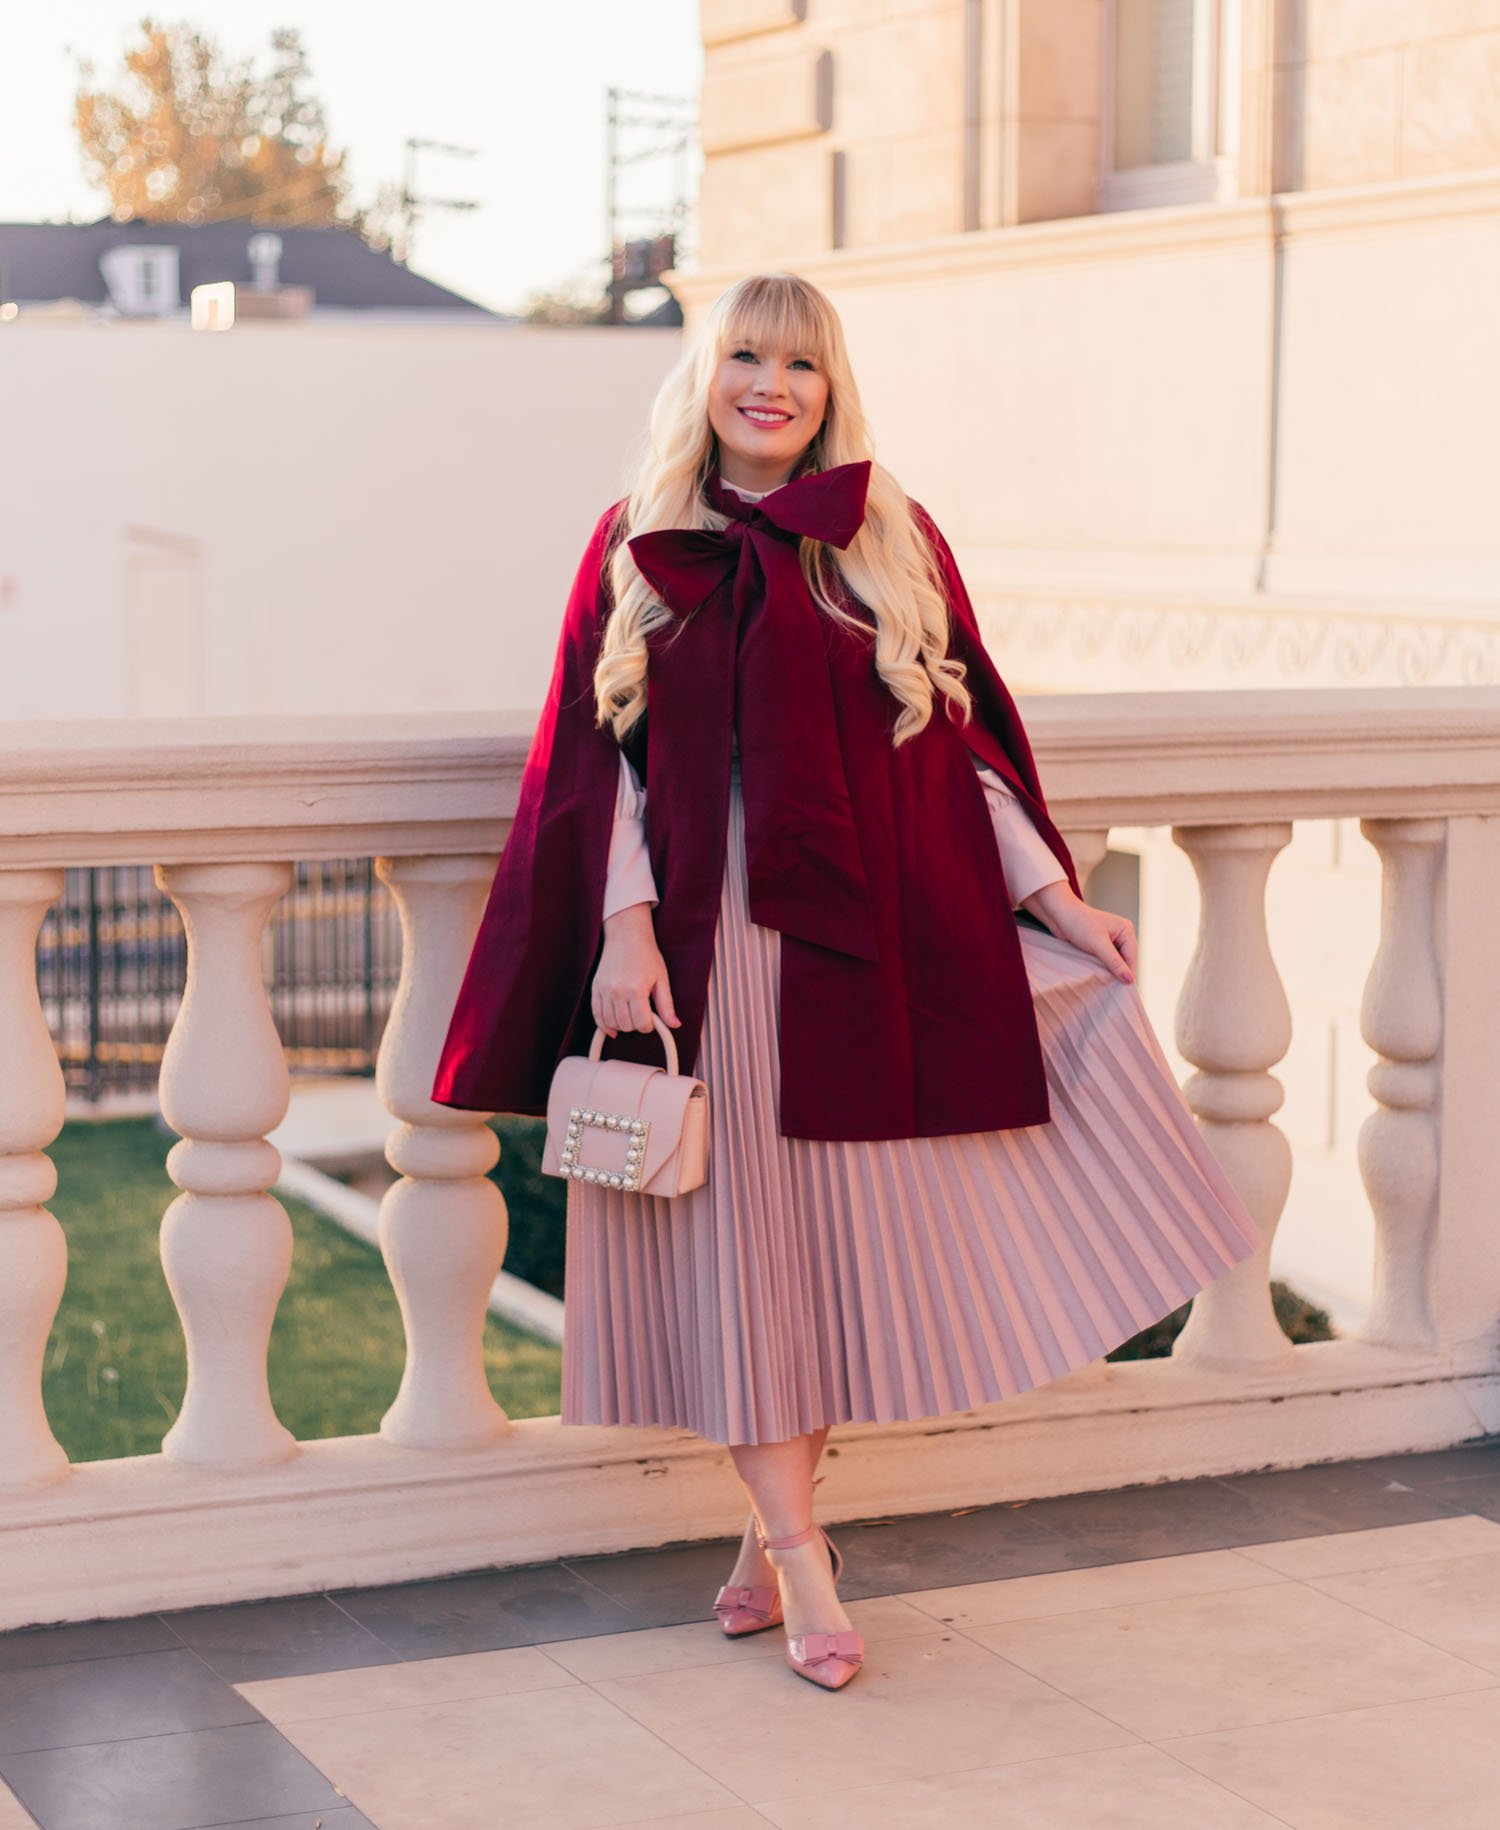 4 Easy Ways to Style a Cape for Fall